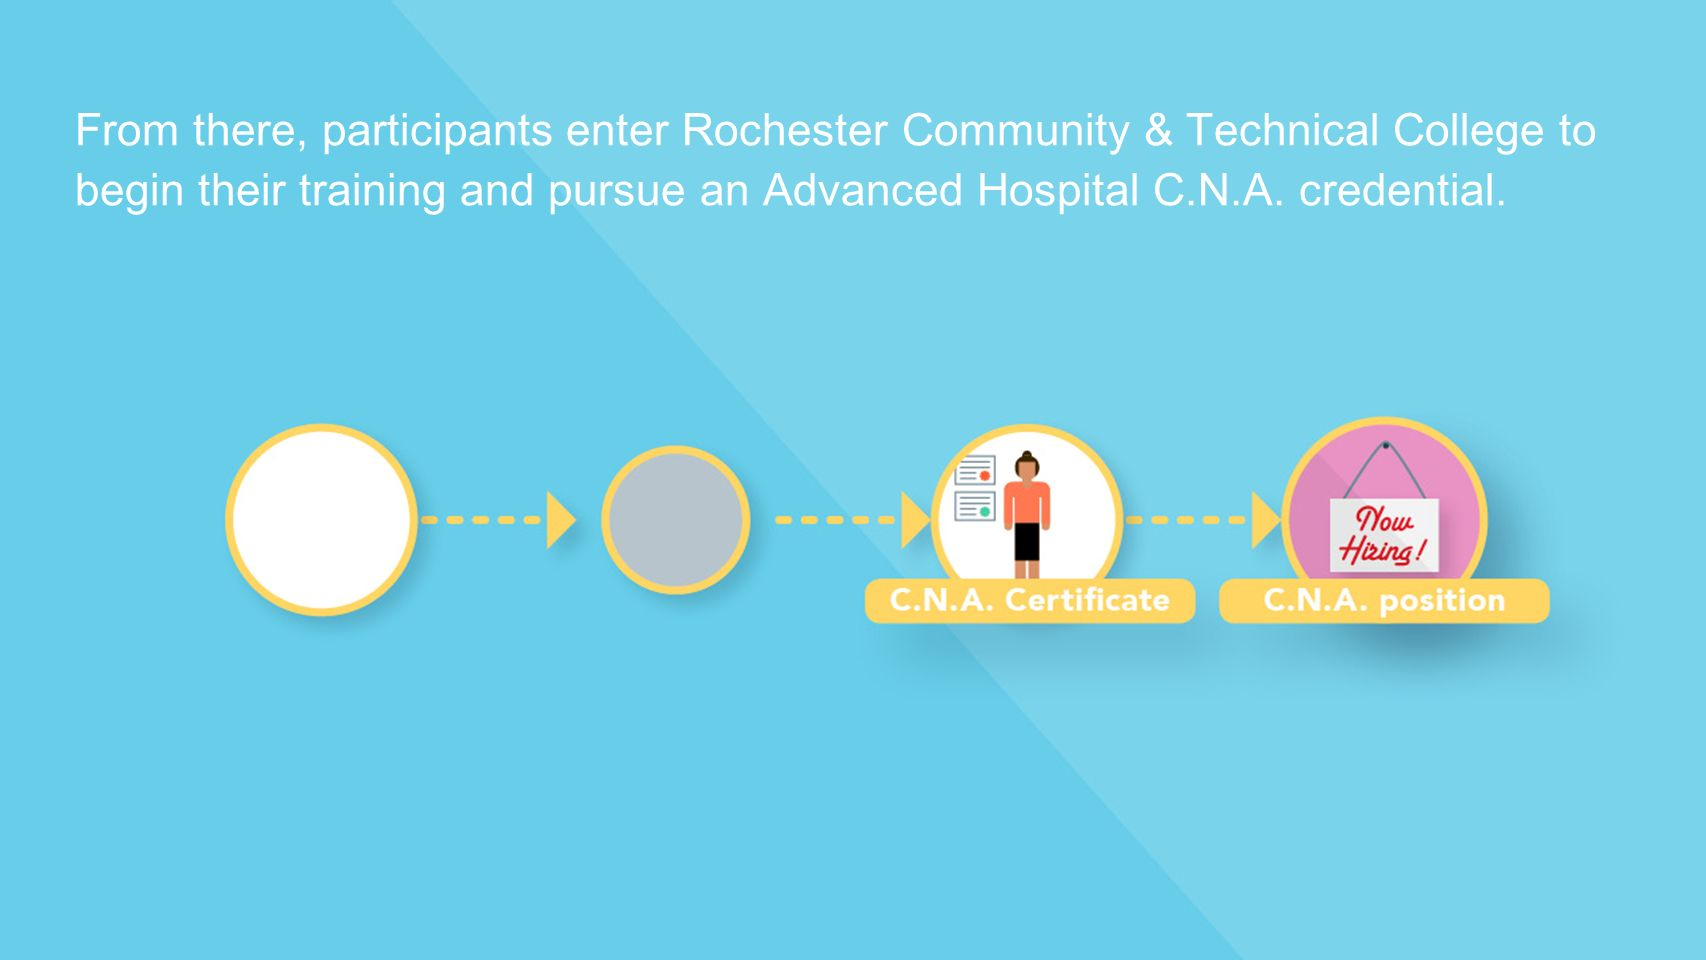 From there, participants enter Rochester Community & Technical College to begin their training and pursue an Advanced Hospital C.N.A.